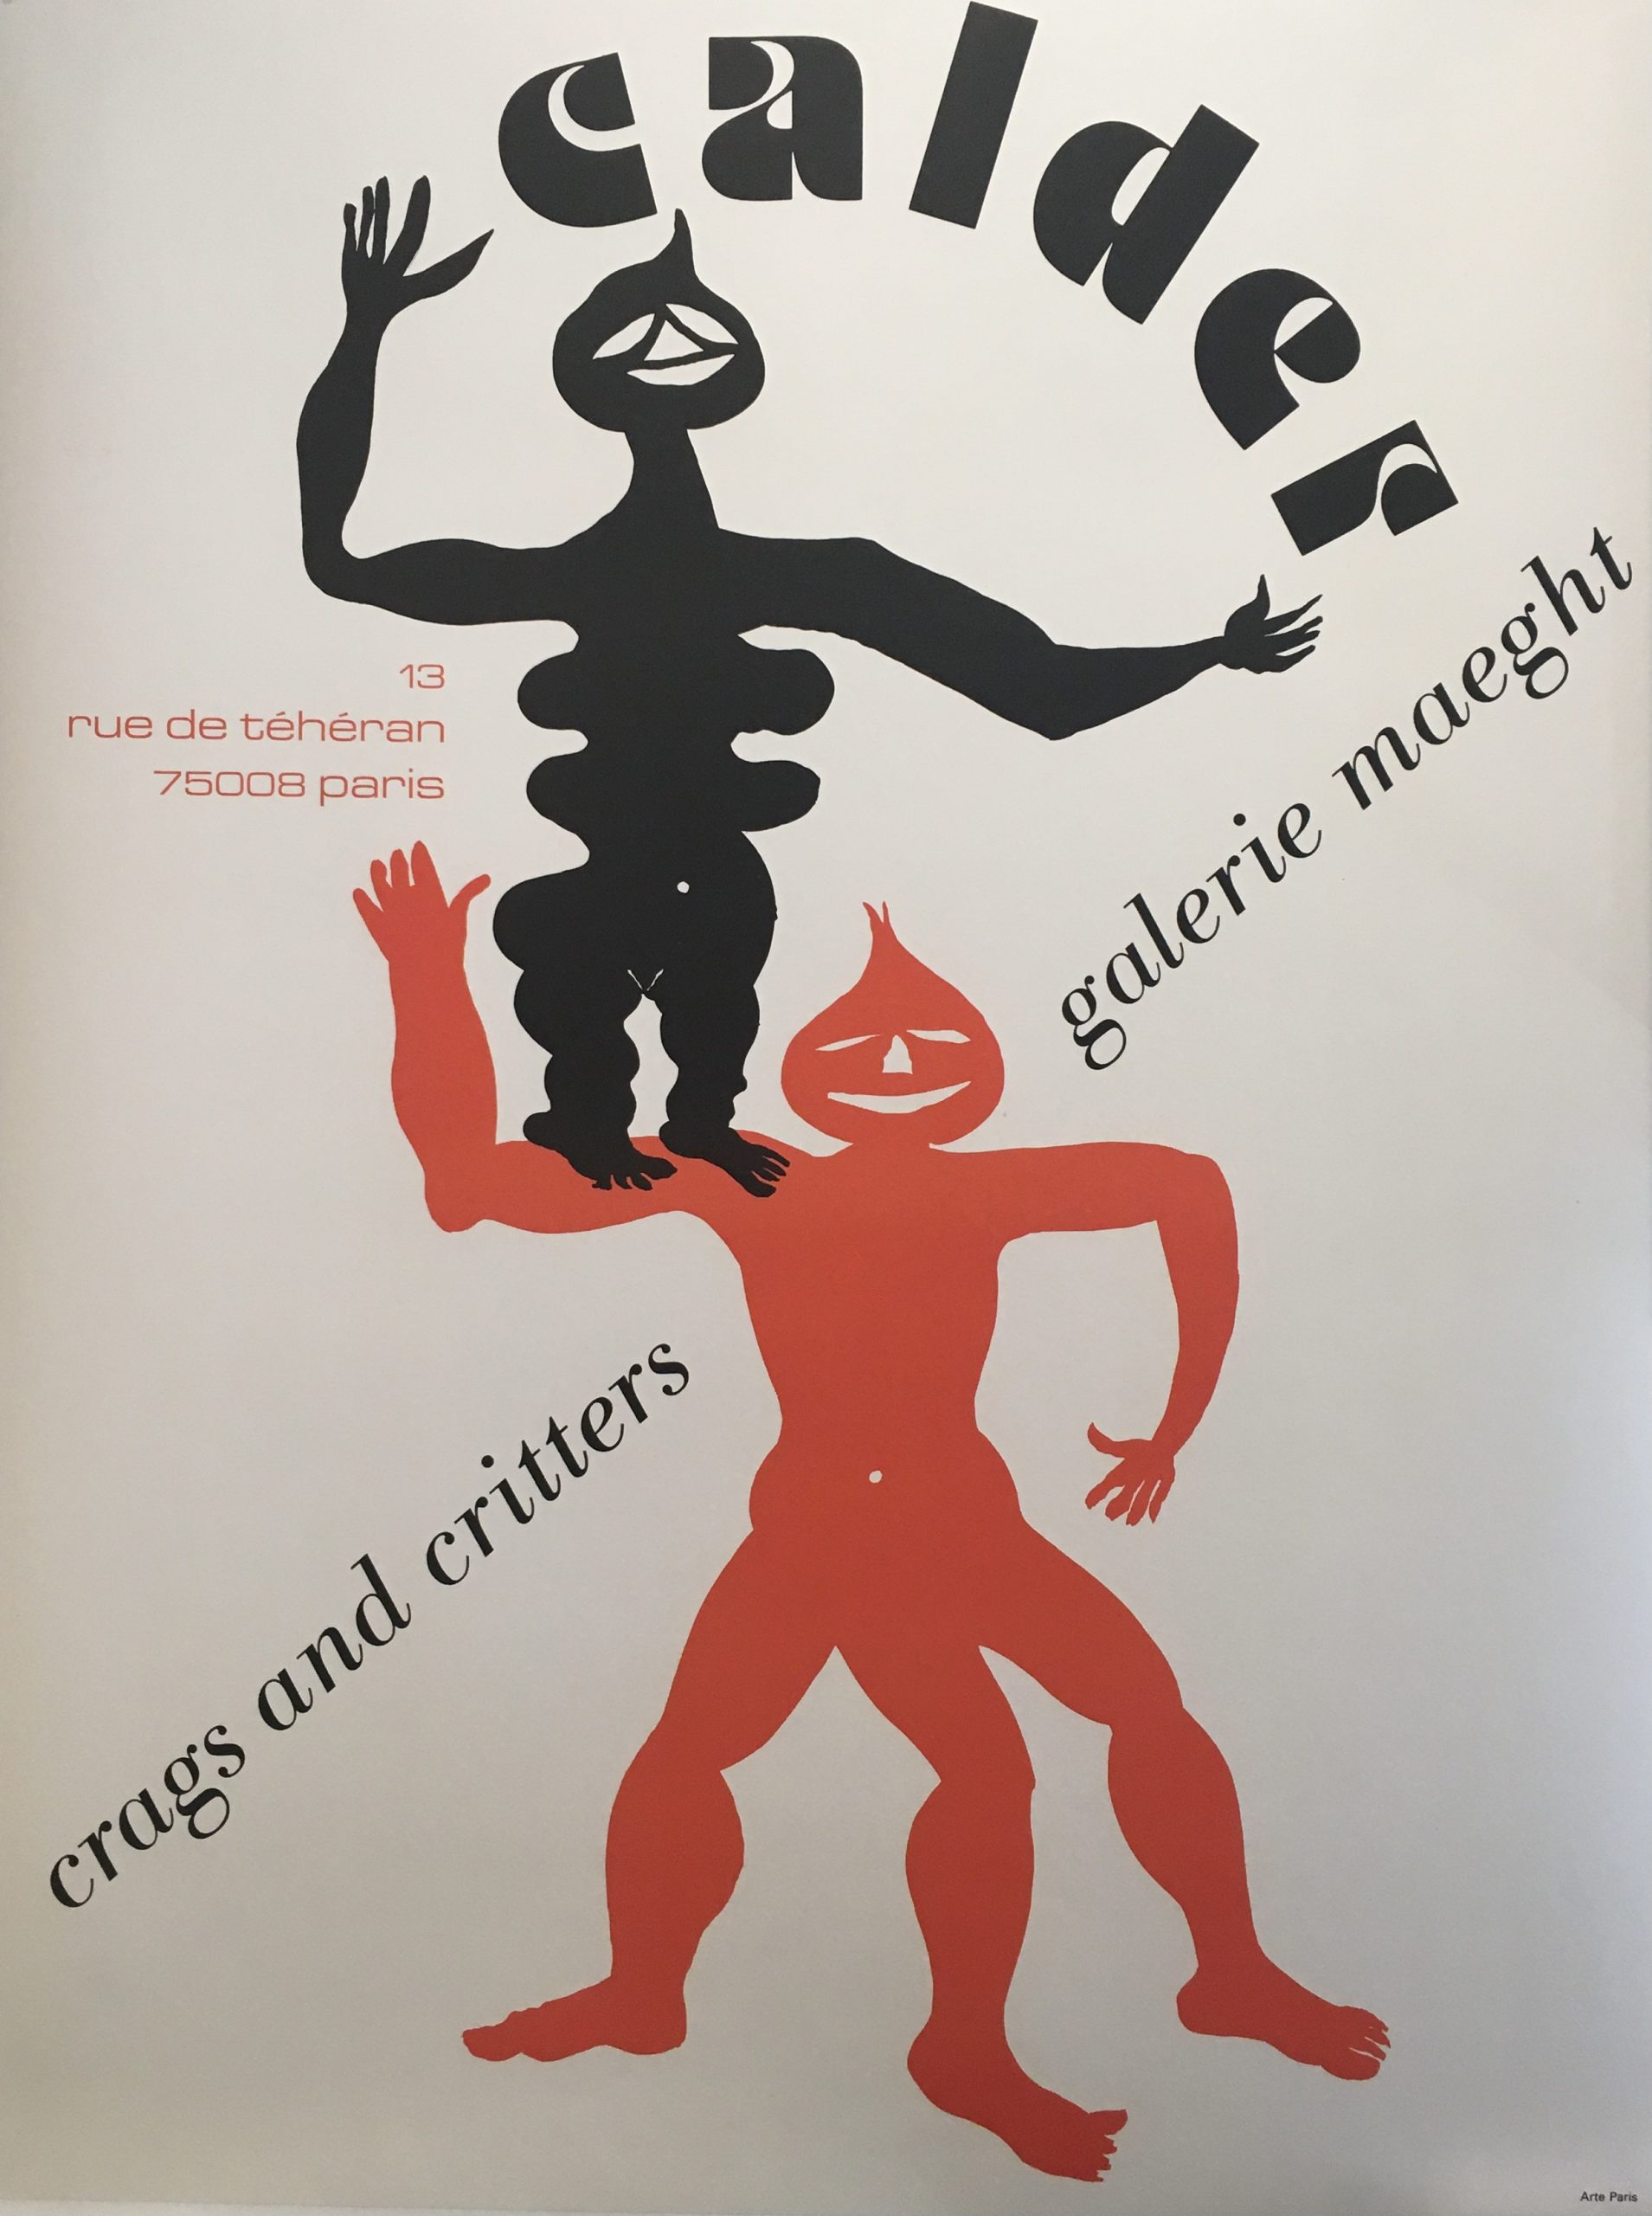 Calder Crags and Critters Galerie Maeght Original Vintage Poster